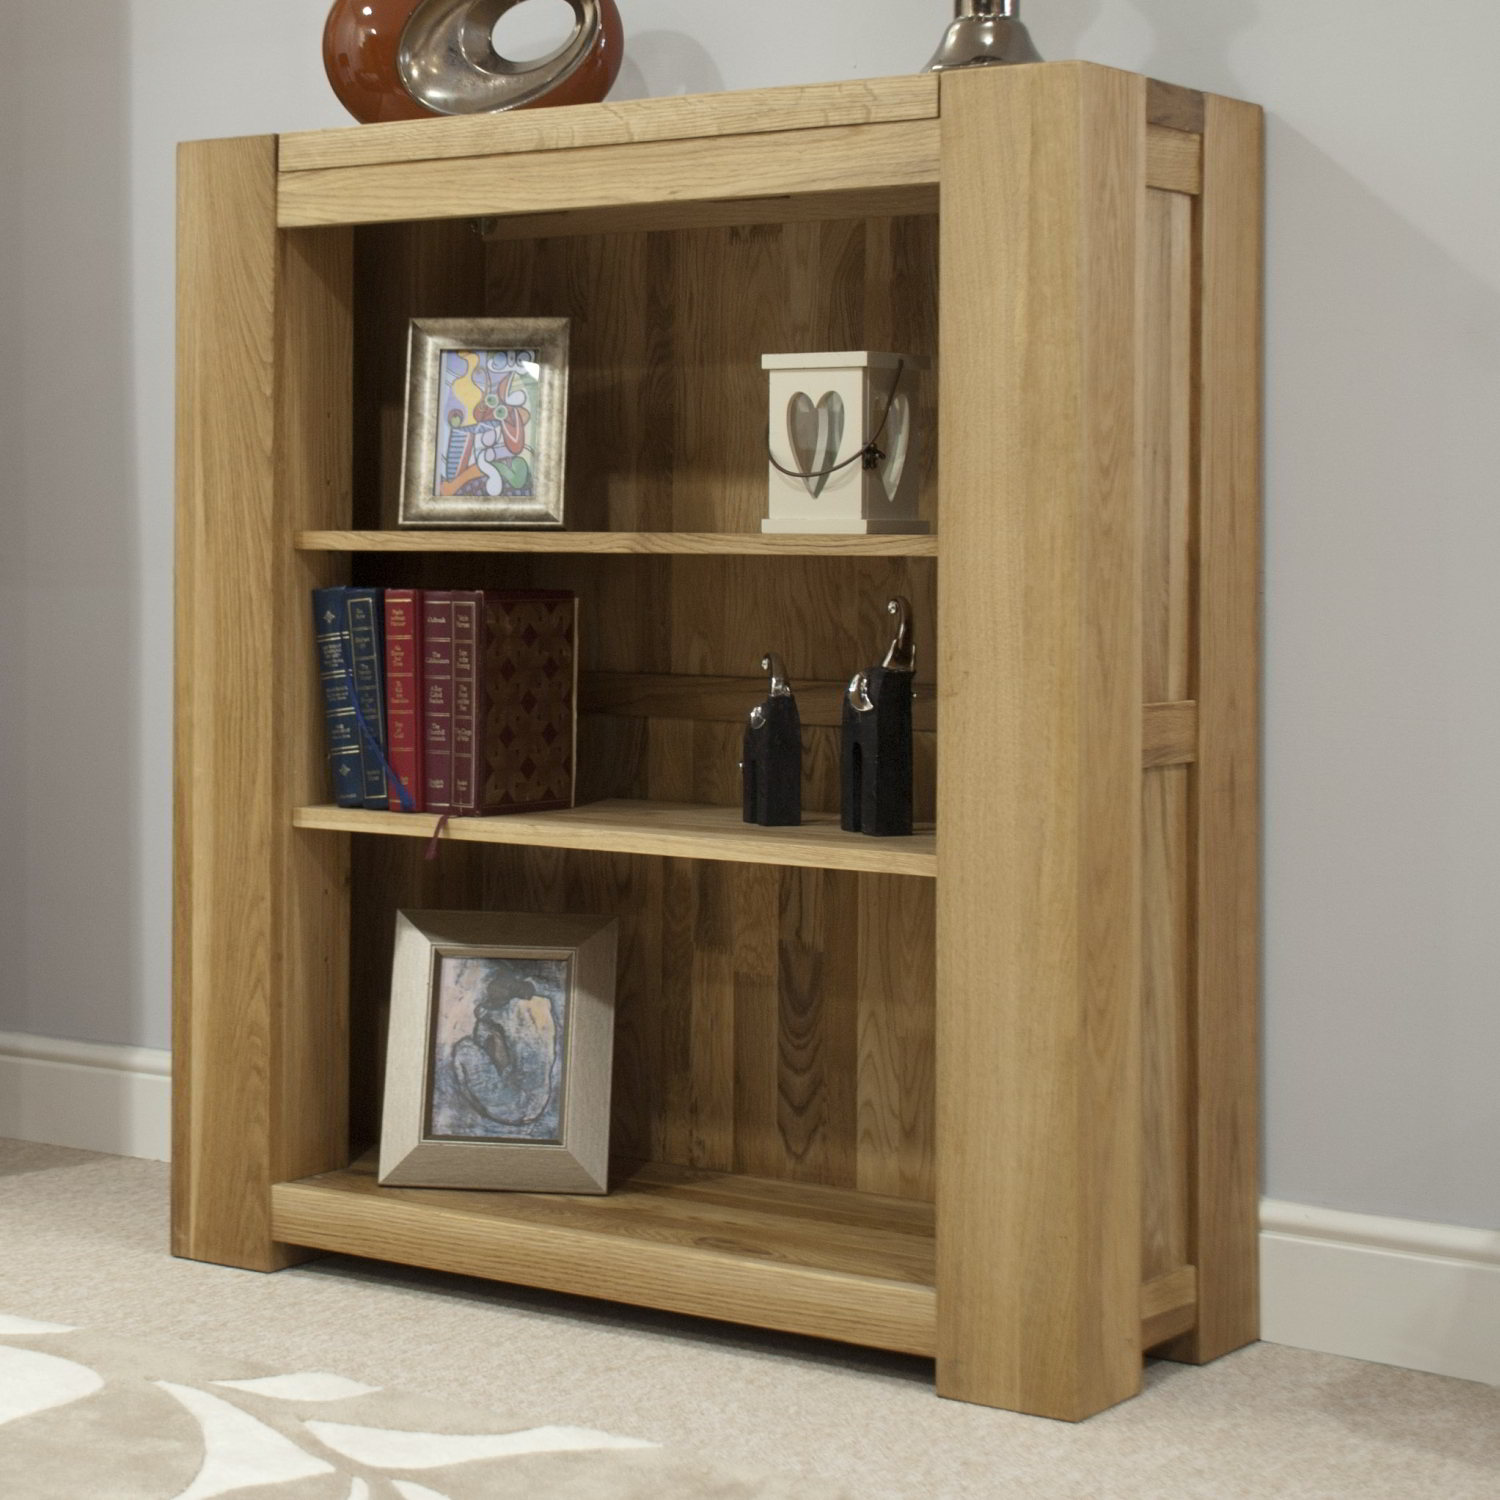 Oak Furniture Living Room